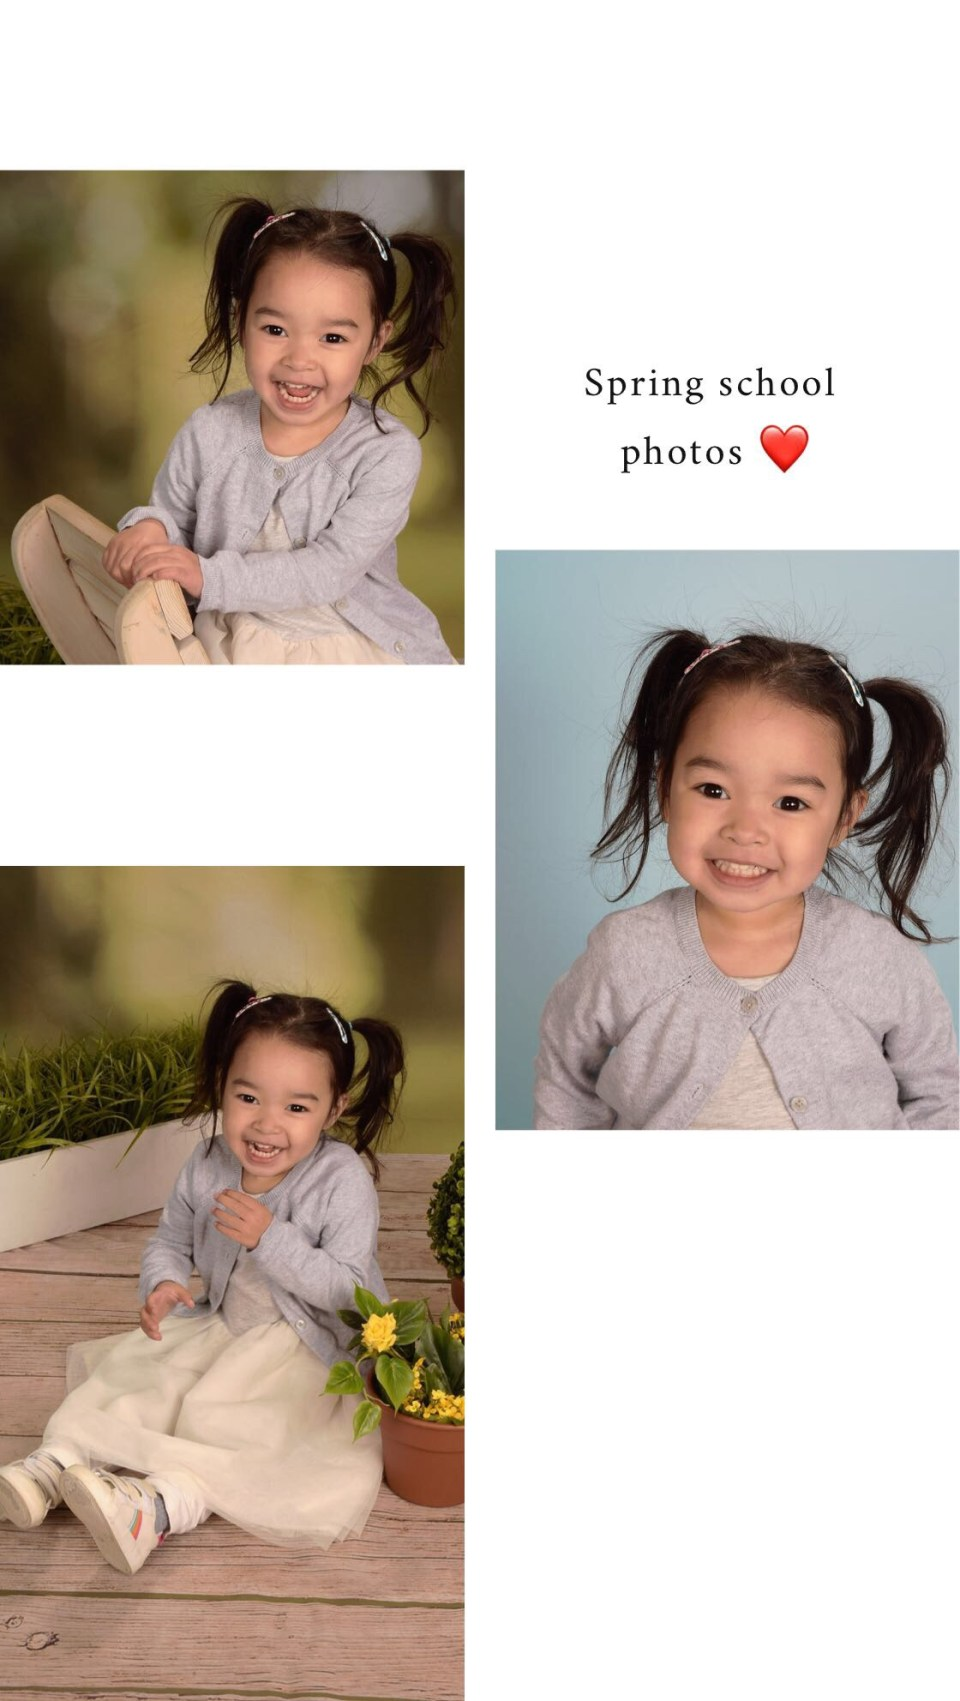 Addy's Spring School Photos